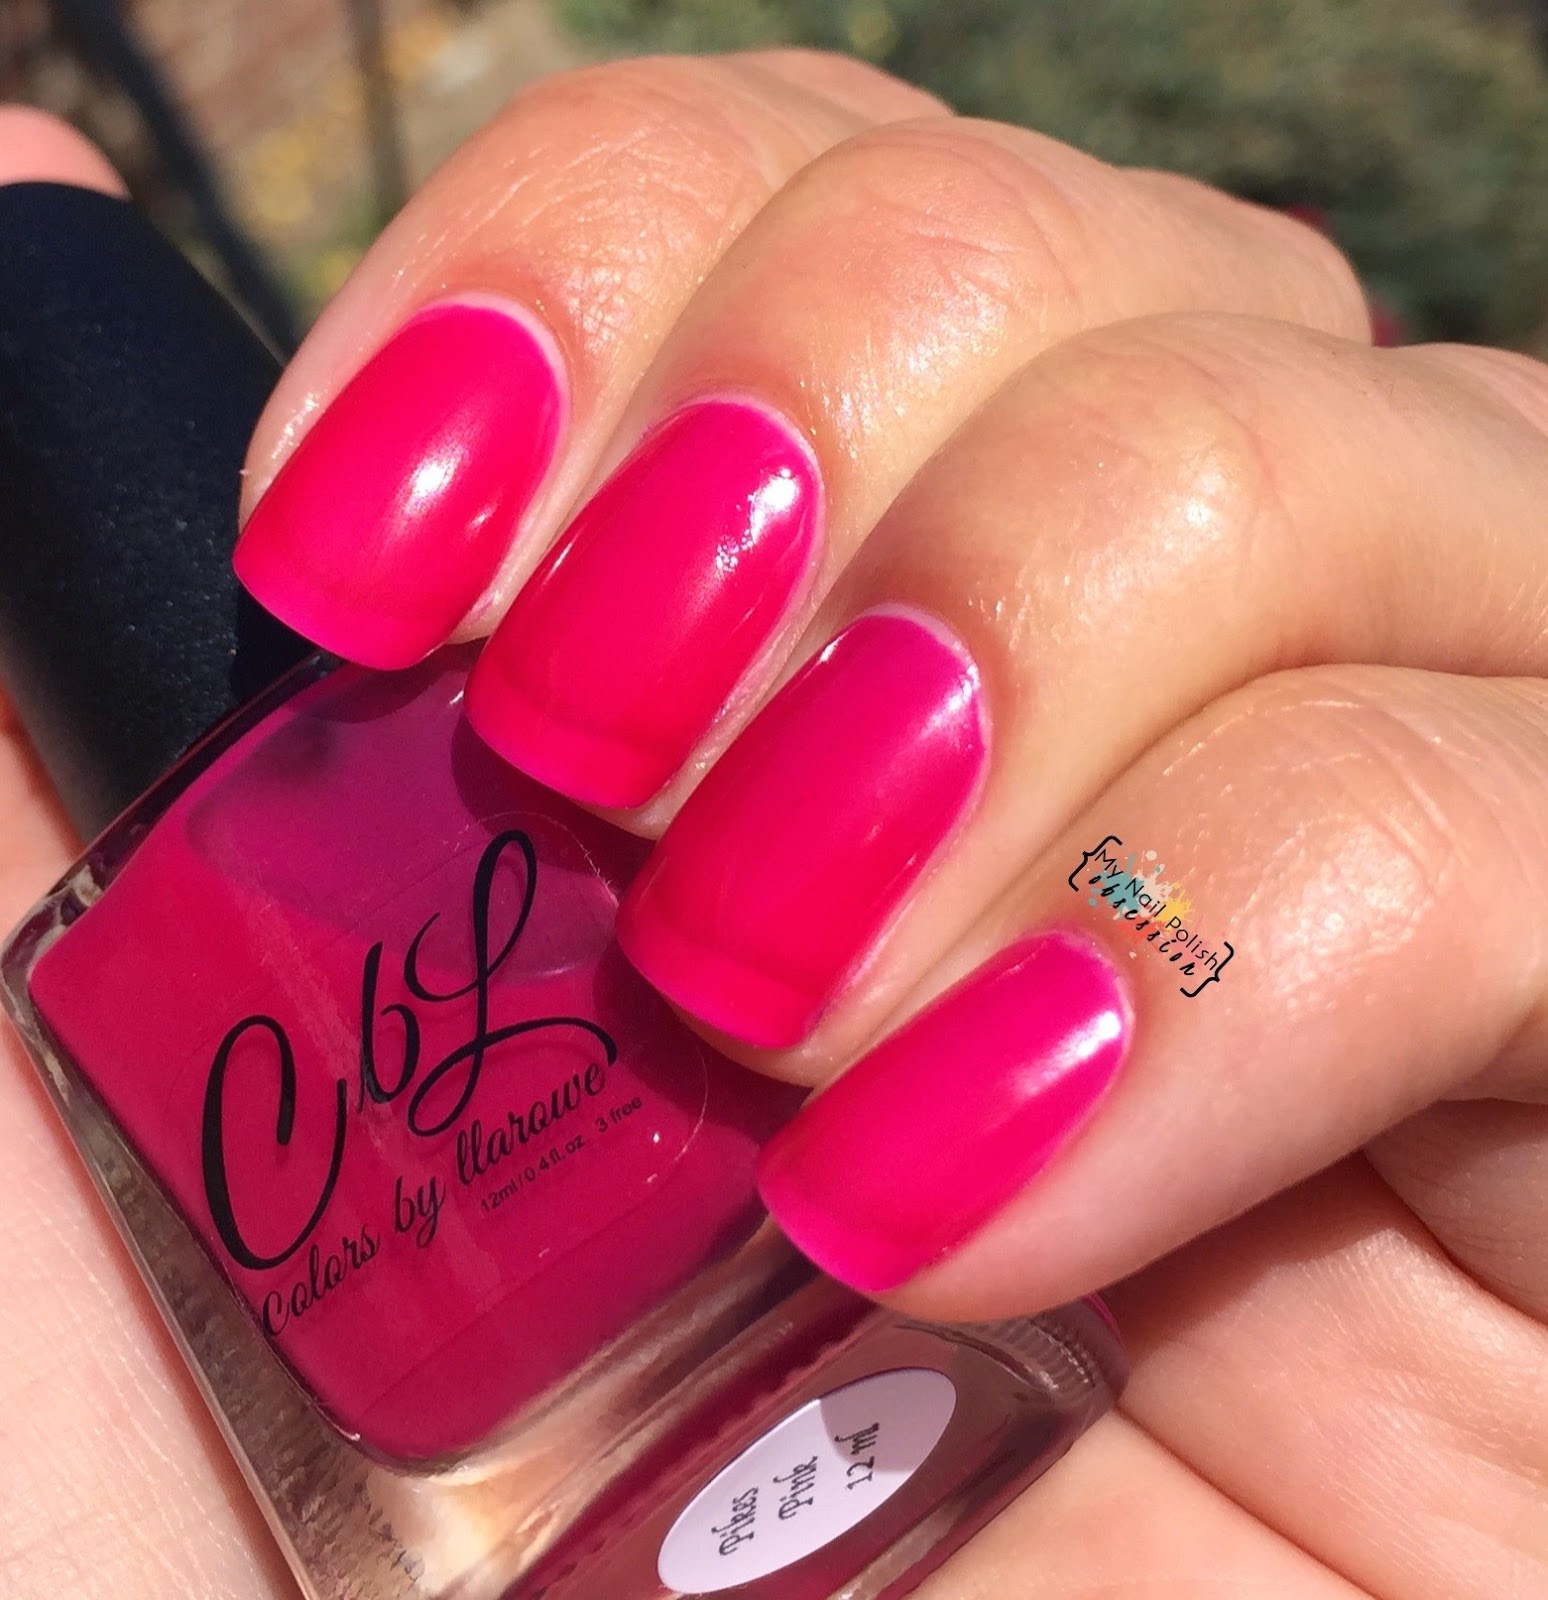 Colors by Llarowe Pikes Pink